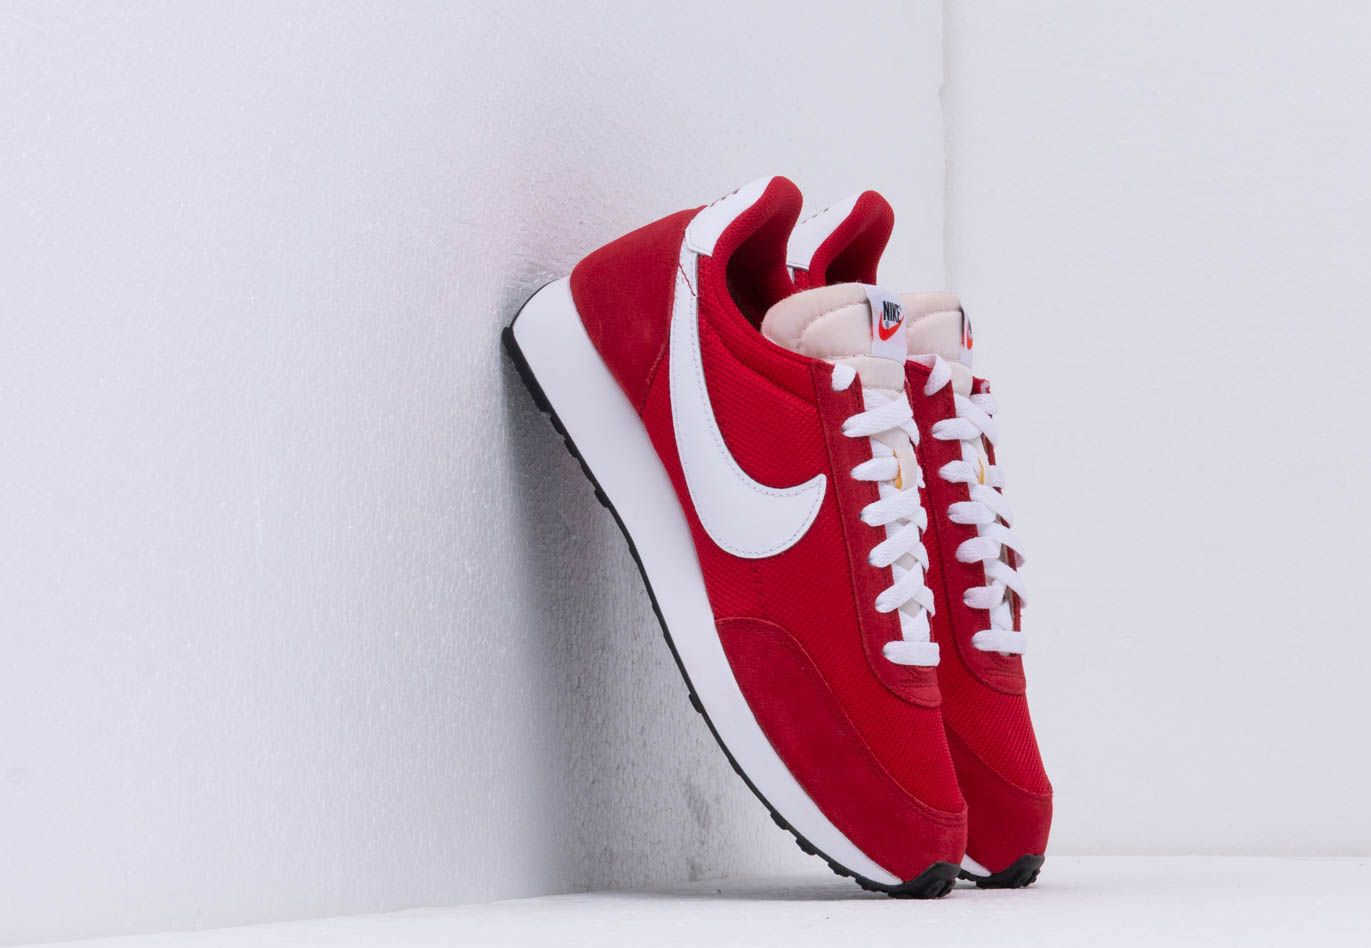 Nike Air Tailwind 79 Gym Red/ White